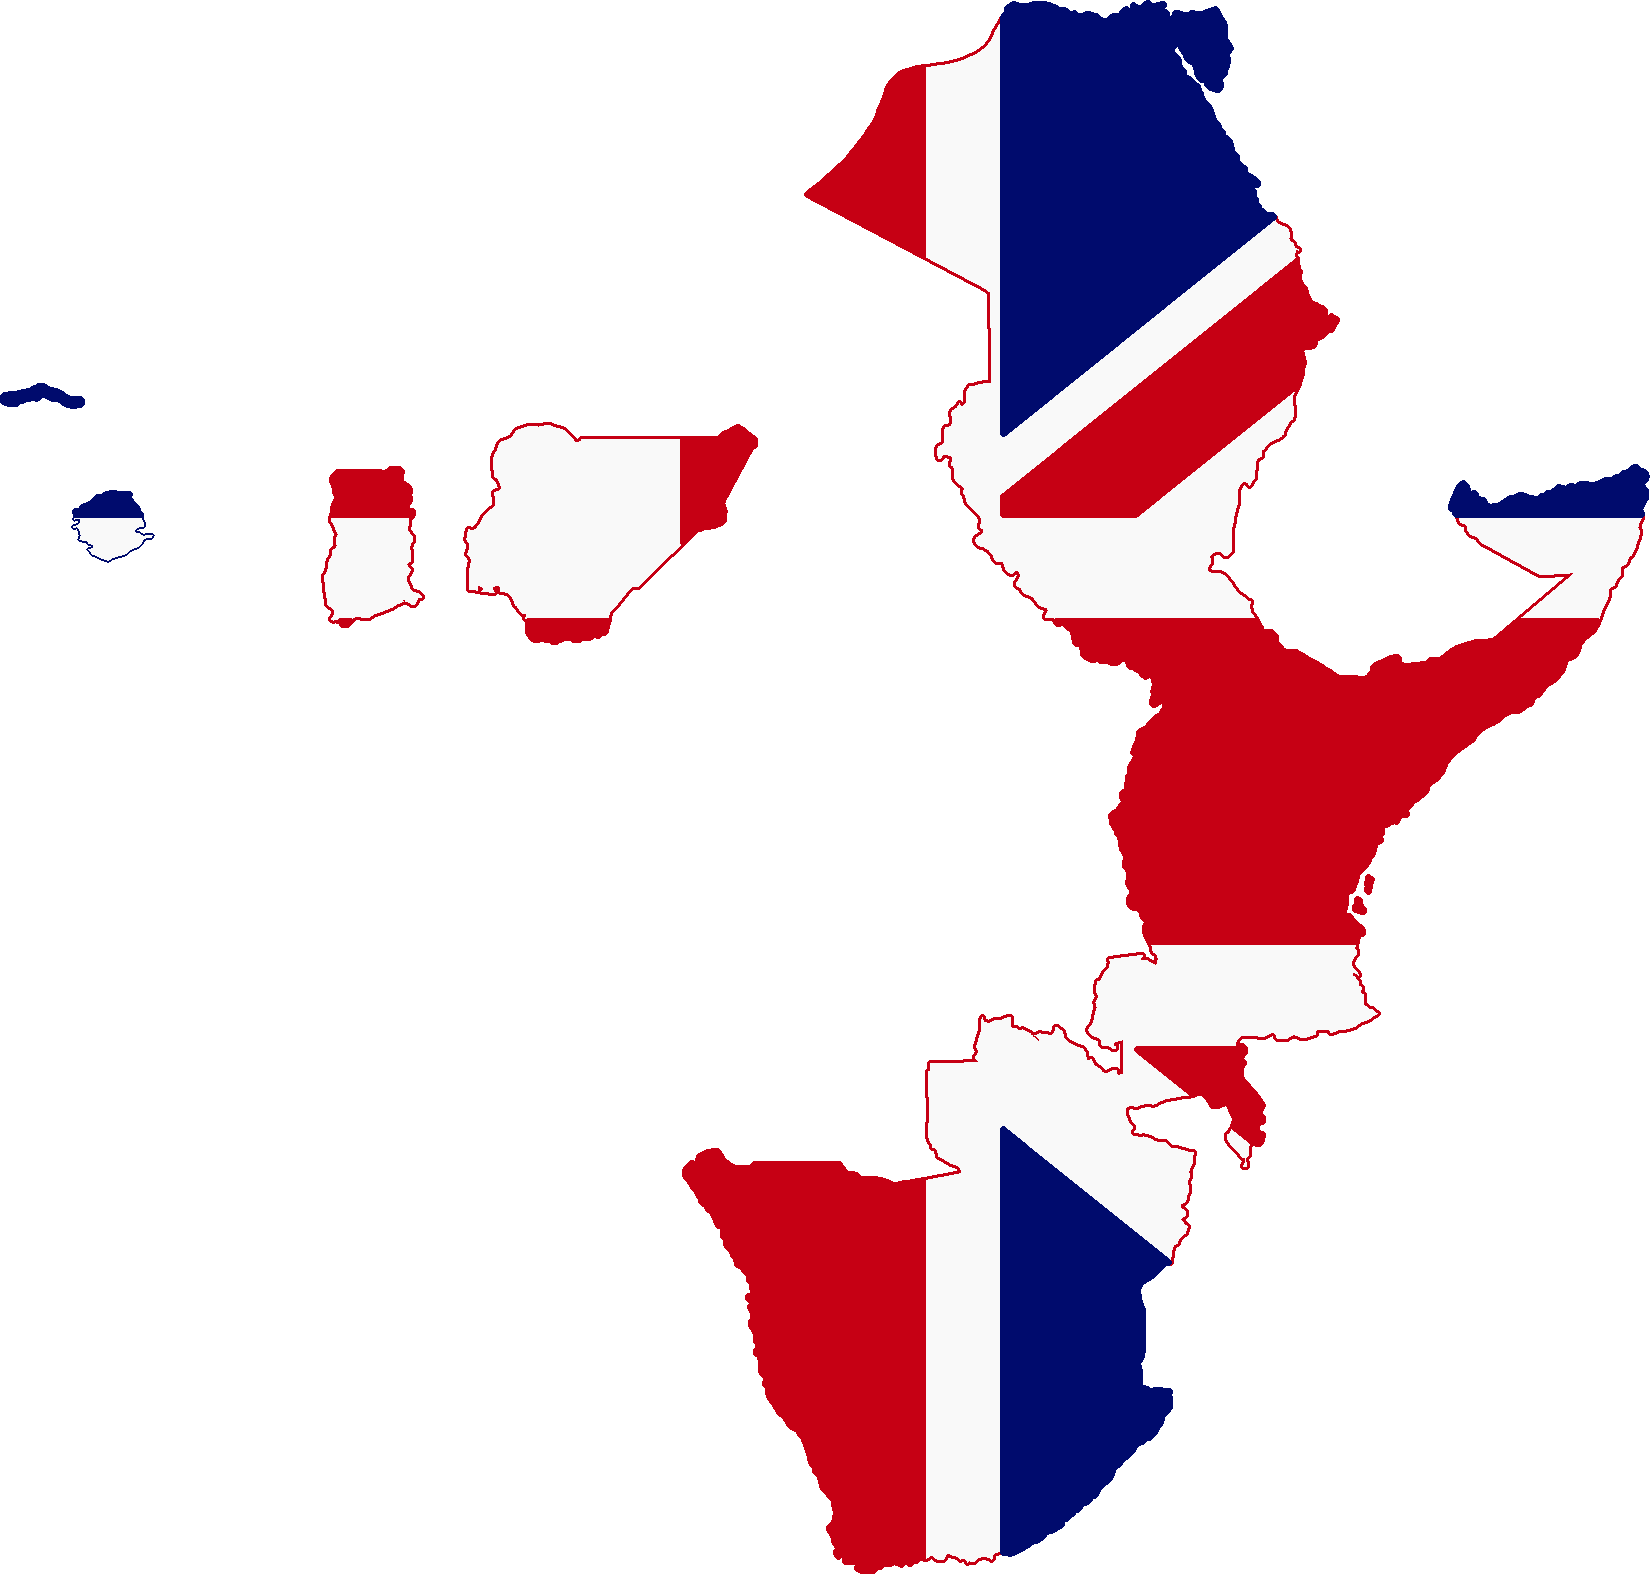 Flag Map Of Africa.File Flag Map Of British Africa 1913 Png Wikimedia Commons